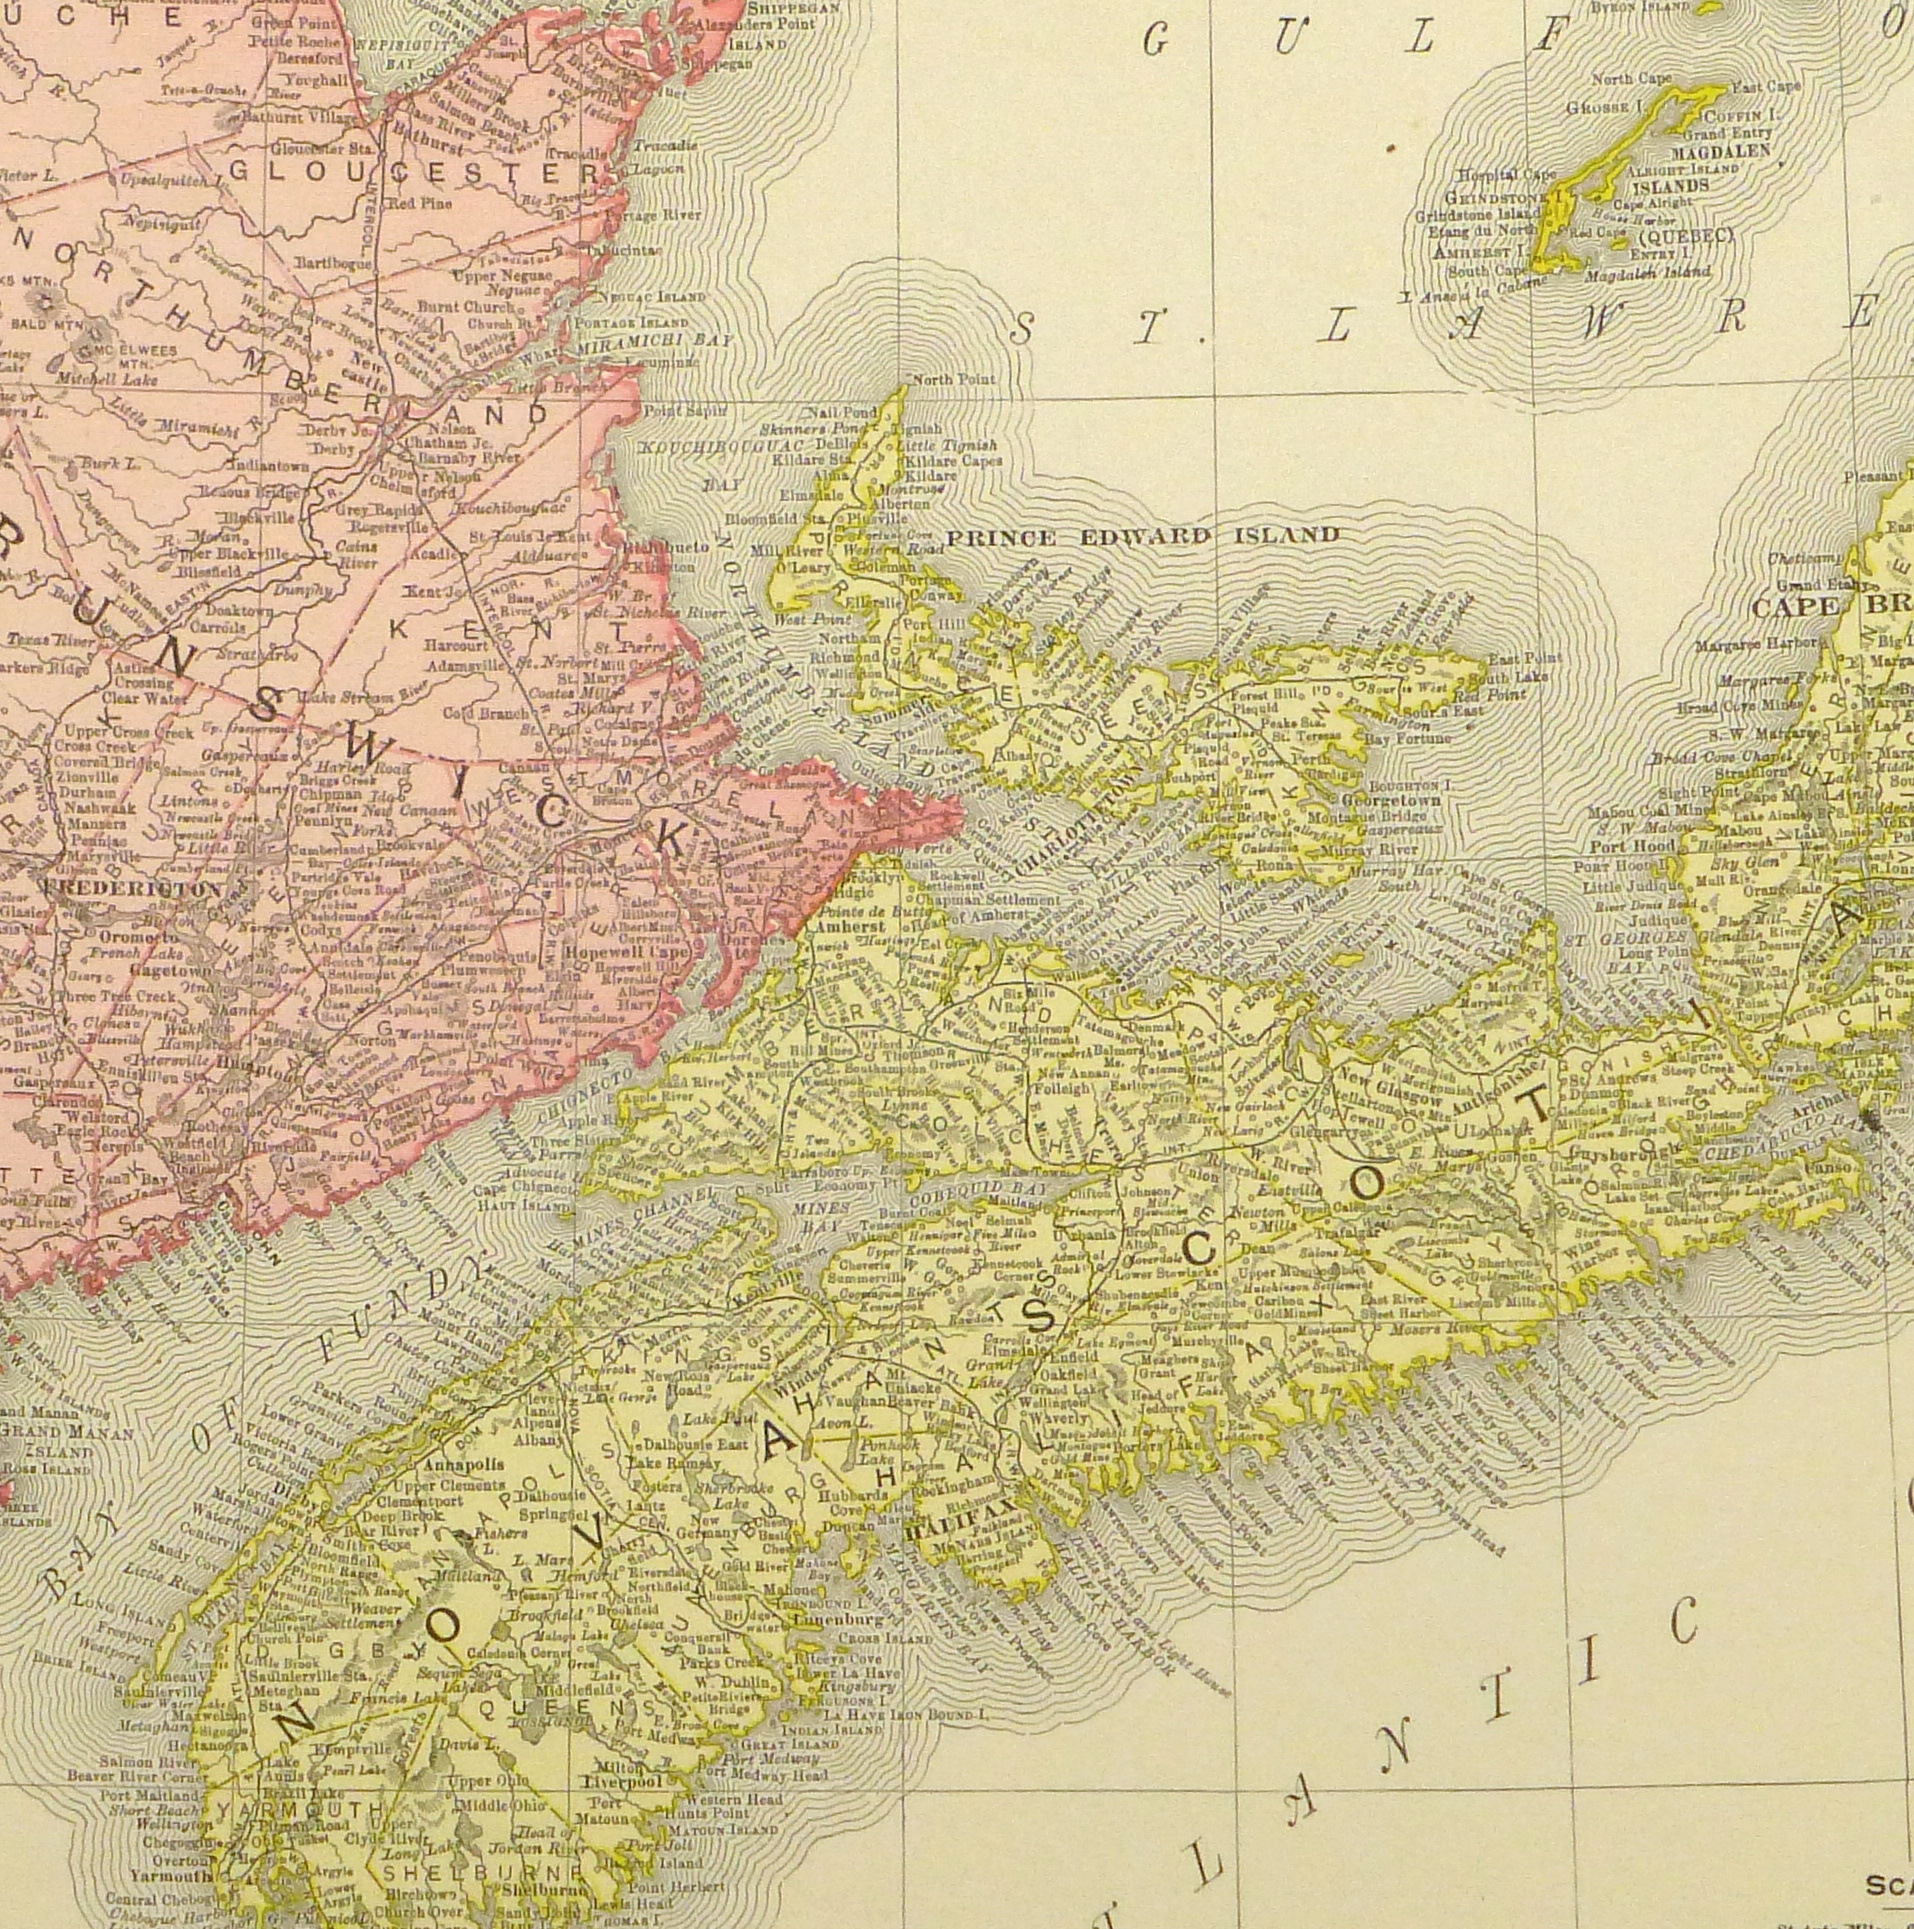 Maritime Provinces, Canada Map, 1895-detail-8553K